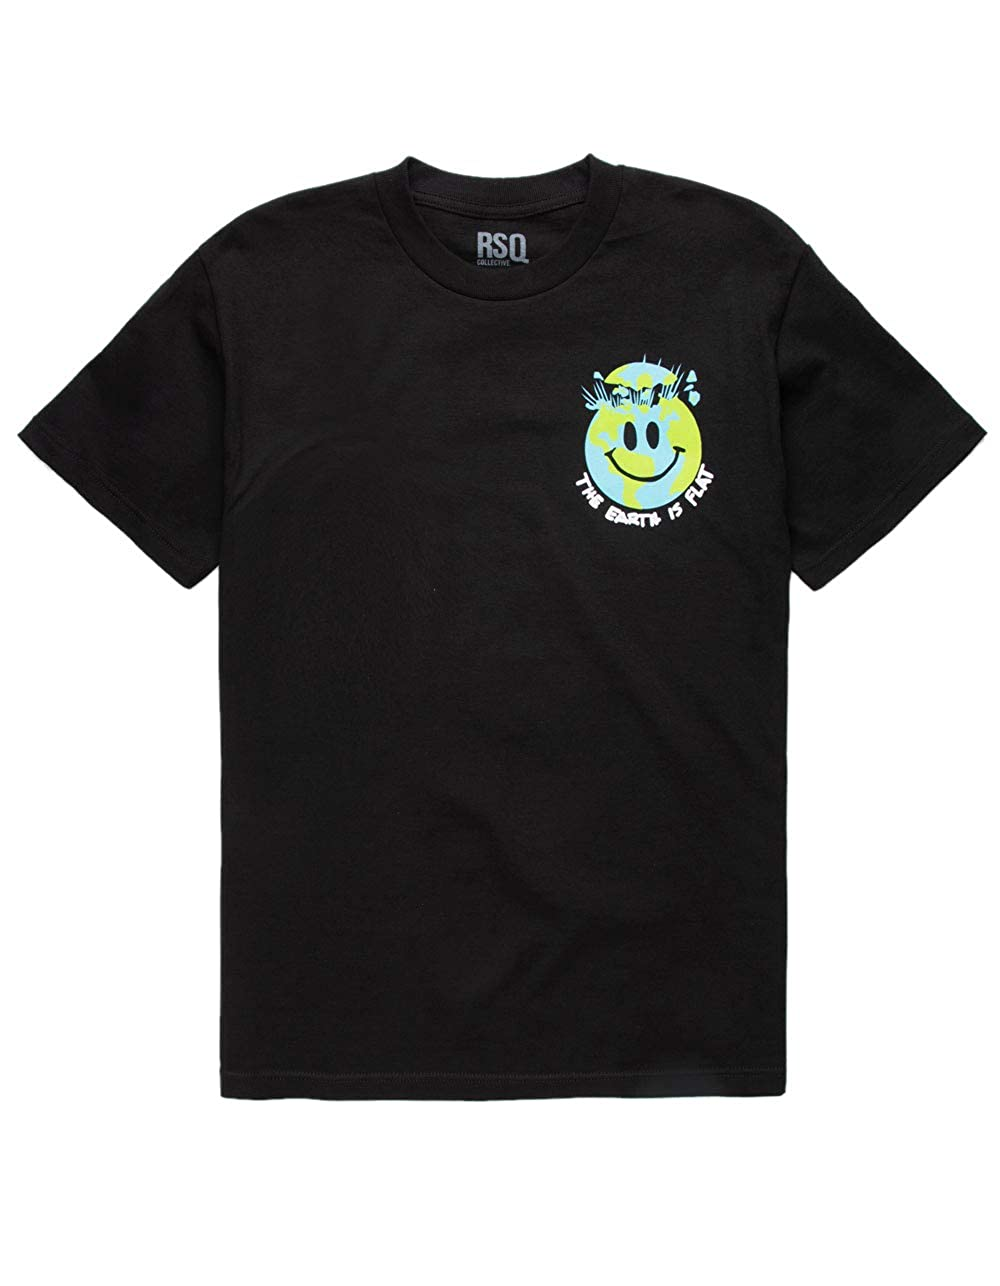 Rsq Flat Earth Black T-Shirt